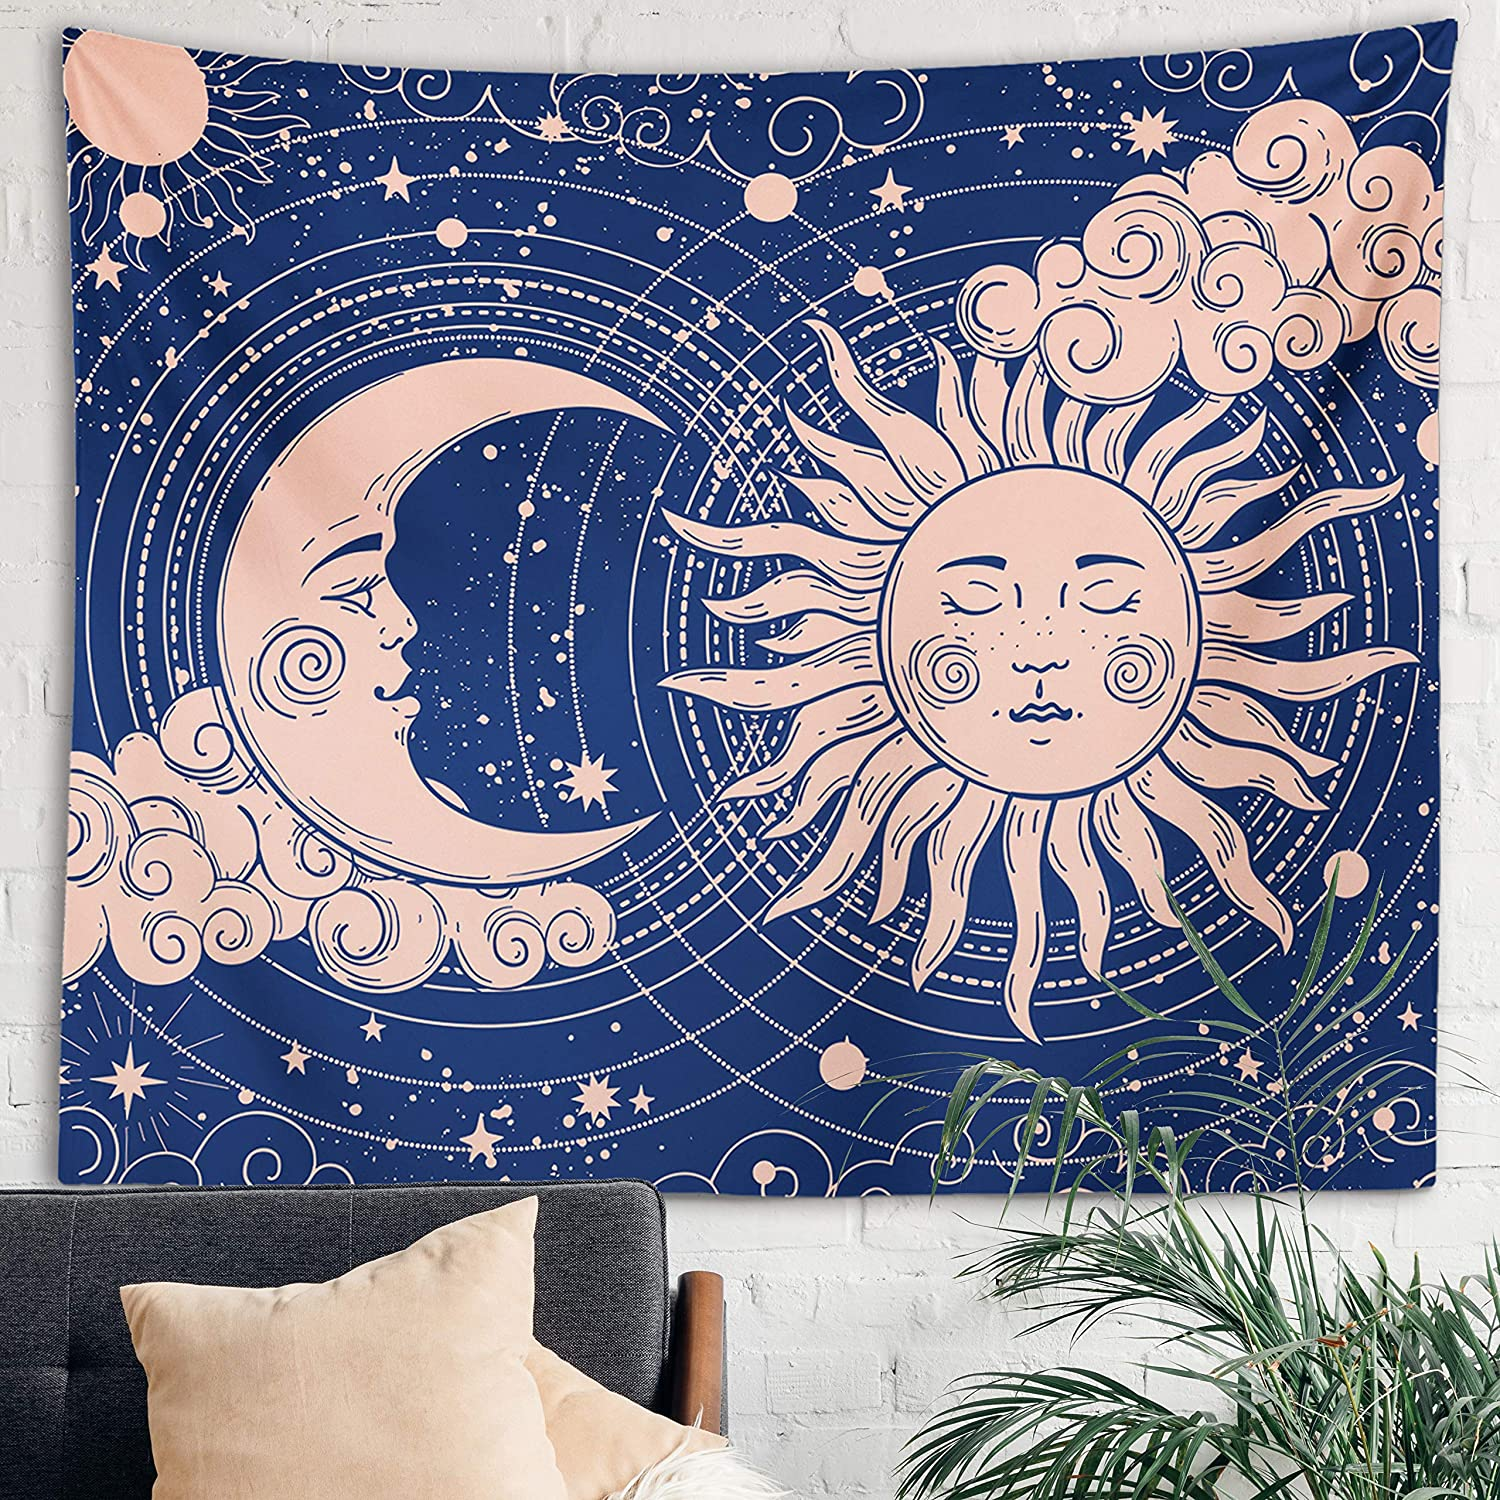 Sun Moon Tapestry Starry Night Wall Hanging Moon Landscape Constellations Lunar Phases Bohemian Eclipse Black and White Wall Decor Astrology Galaxy Boho Celestial Tapestry (Blue Sun-Moon, 59